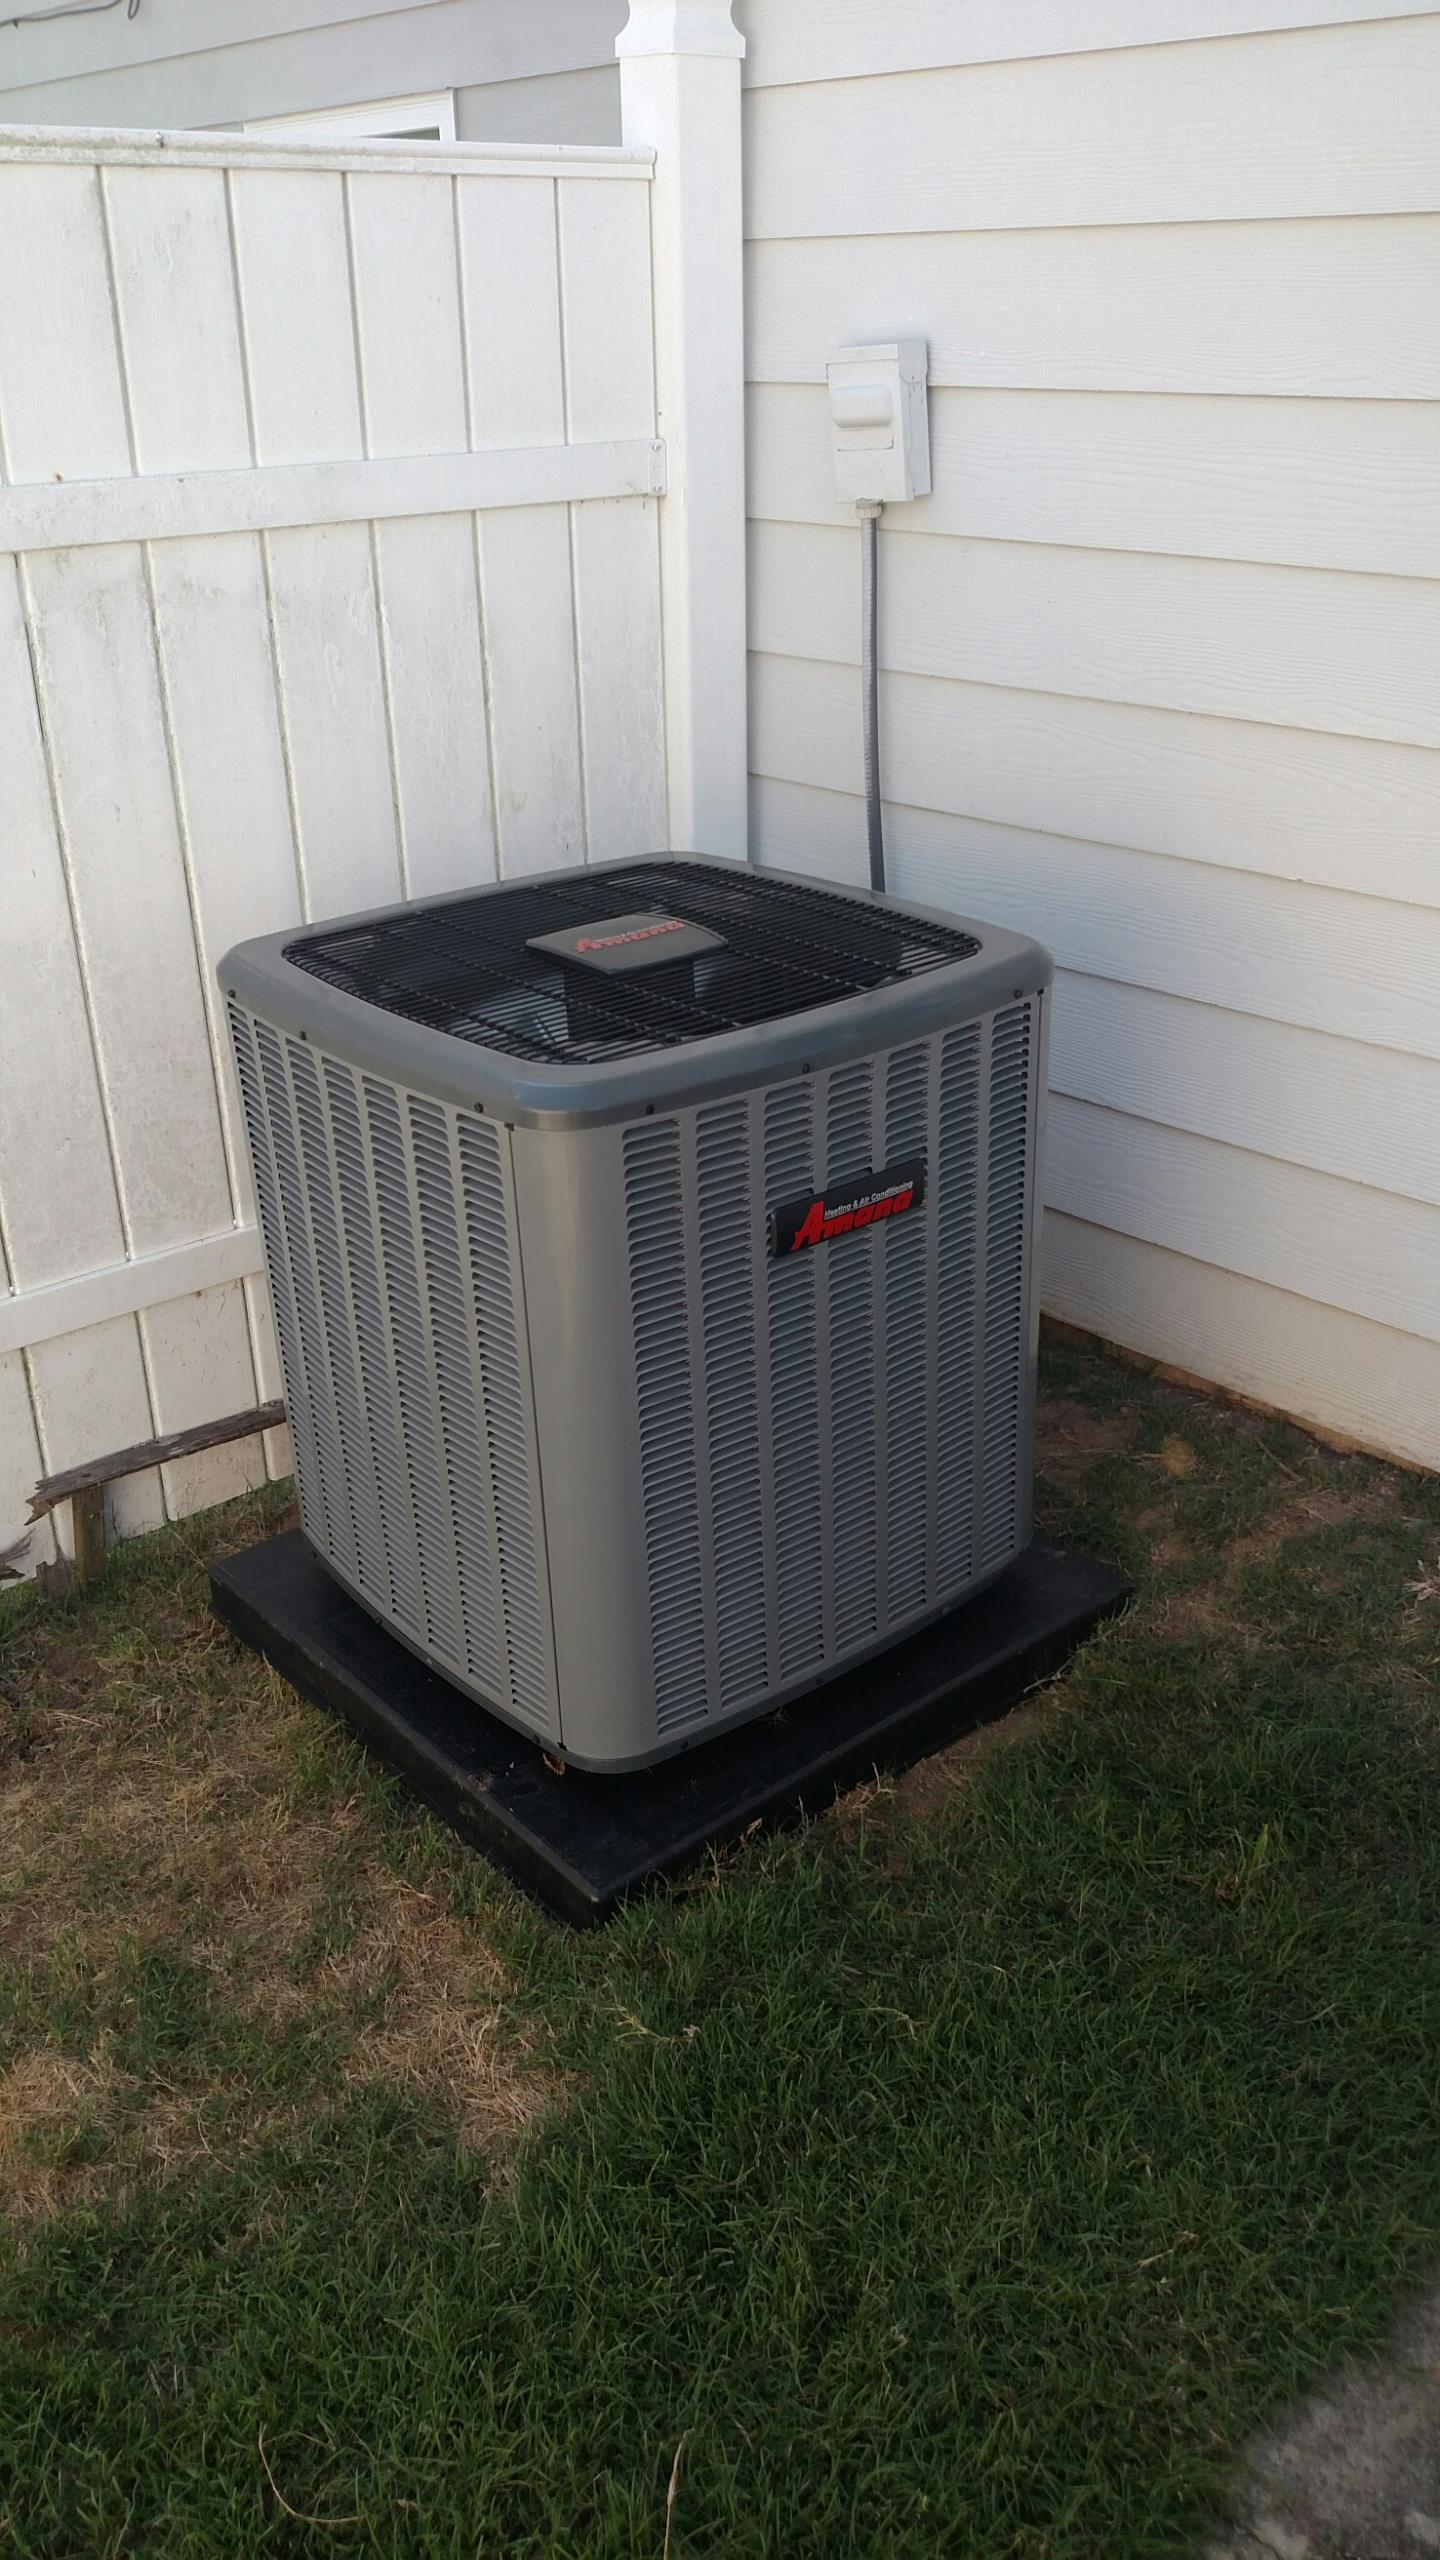 Oakwood, GA - Installing this new Amana 14 seer central heating and cooling system. New unit has a 10 year all parts warranty